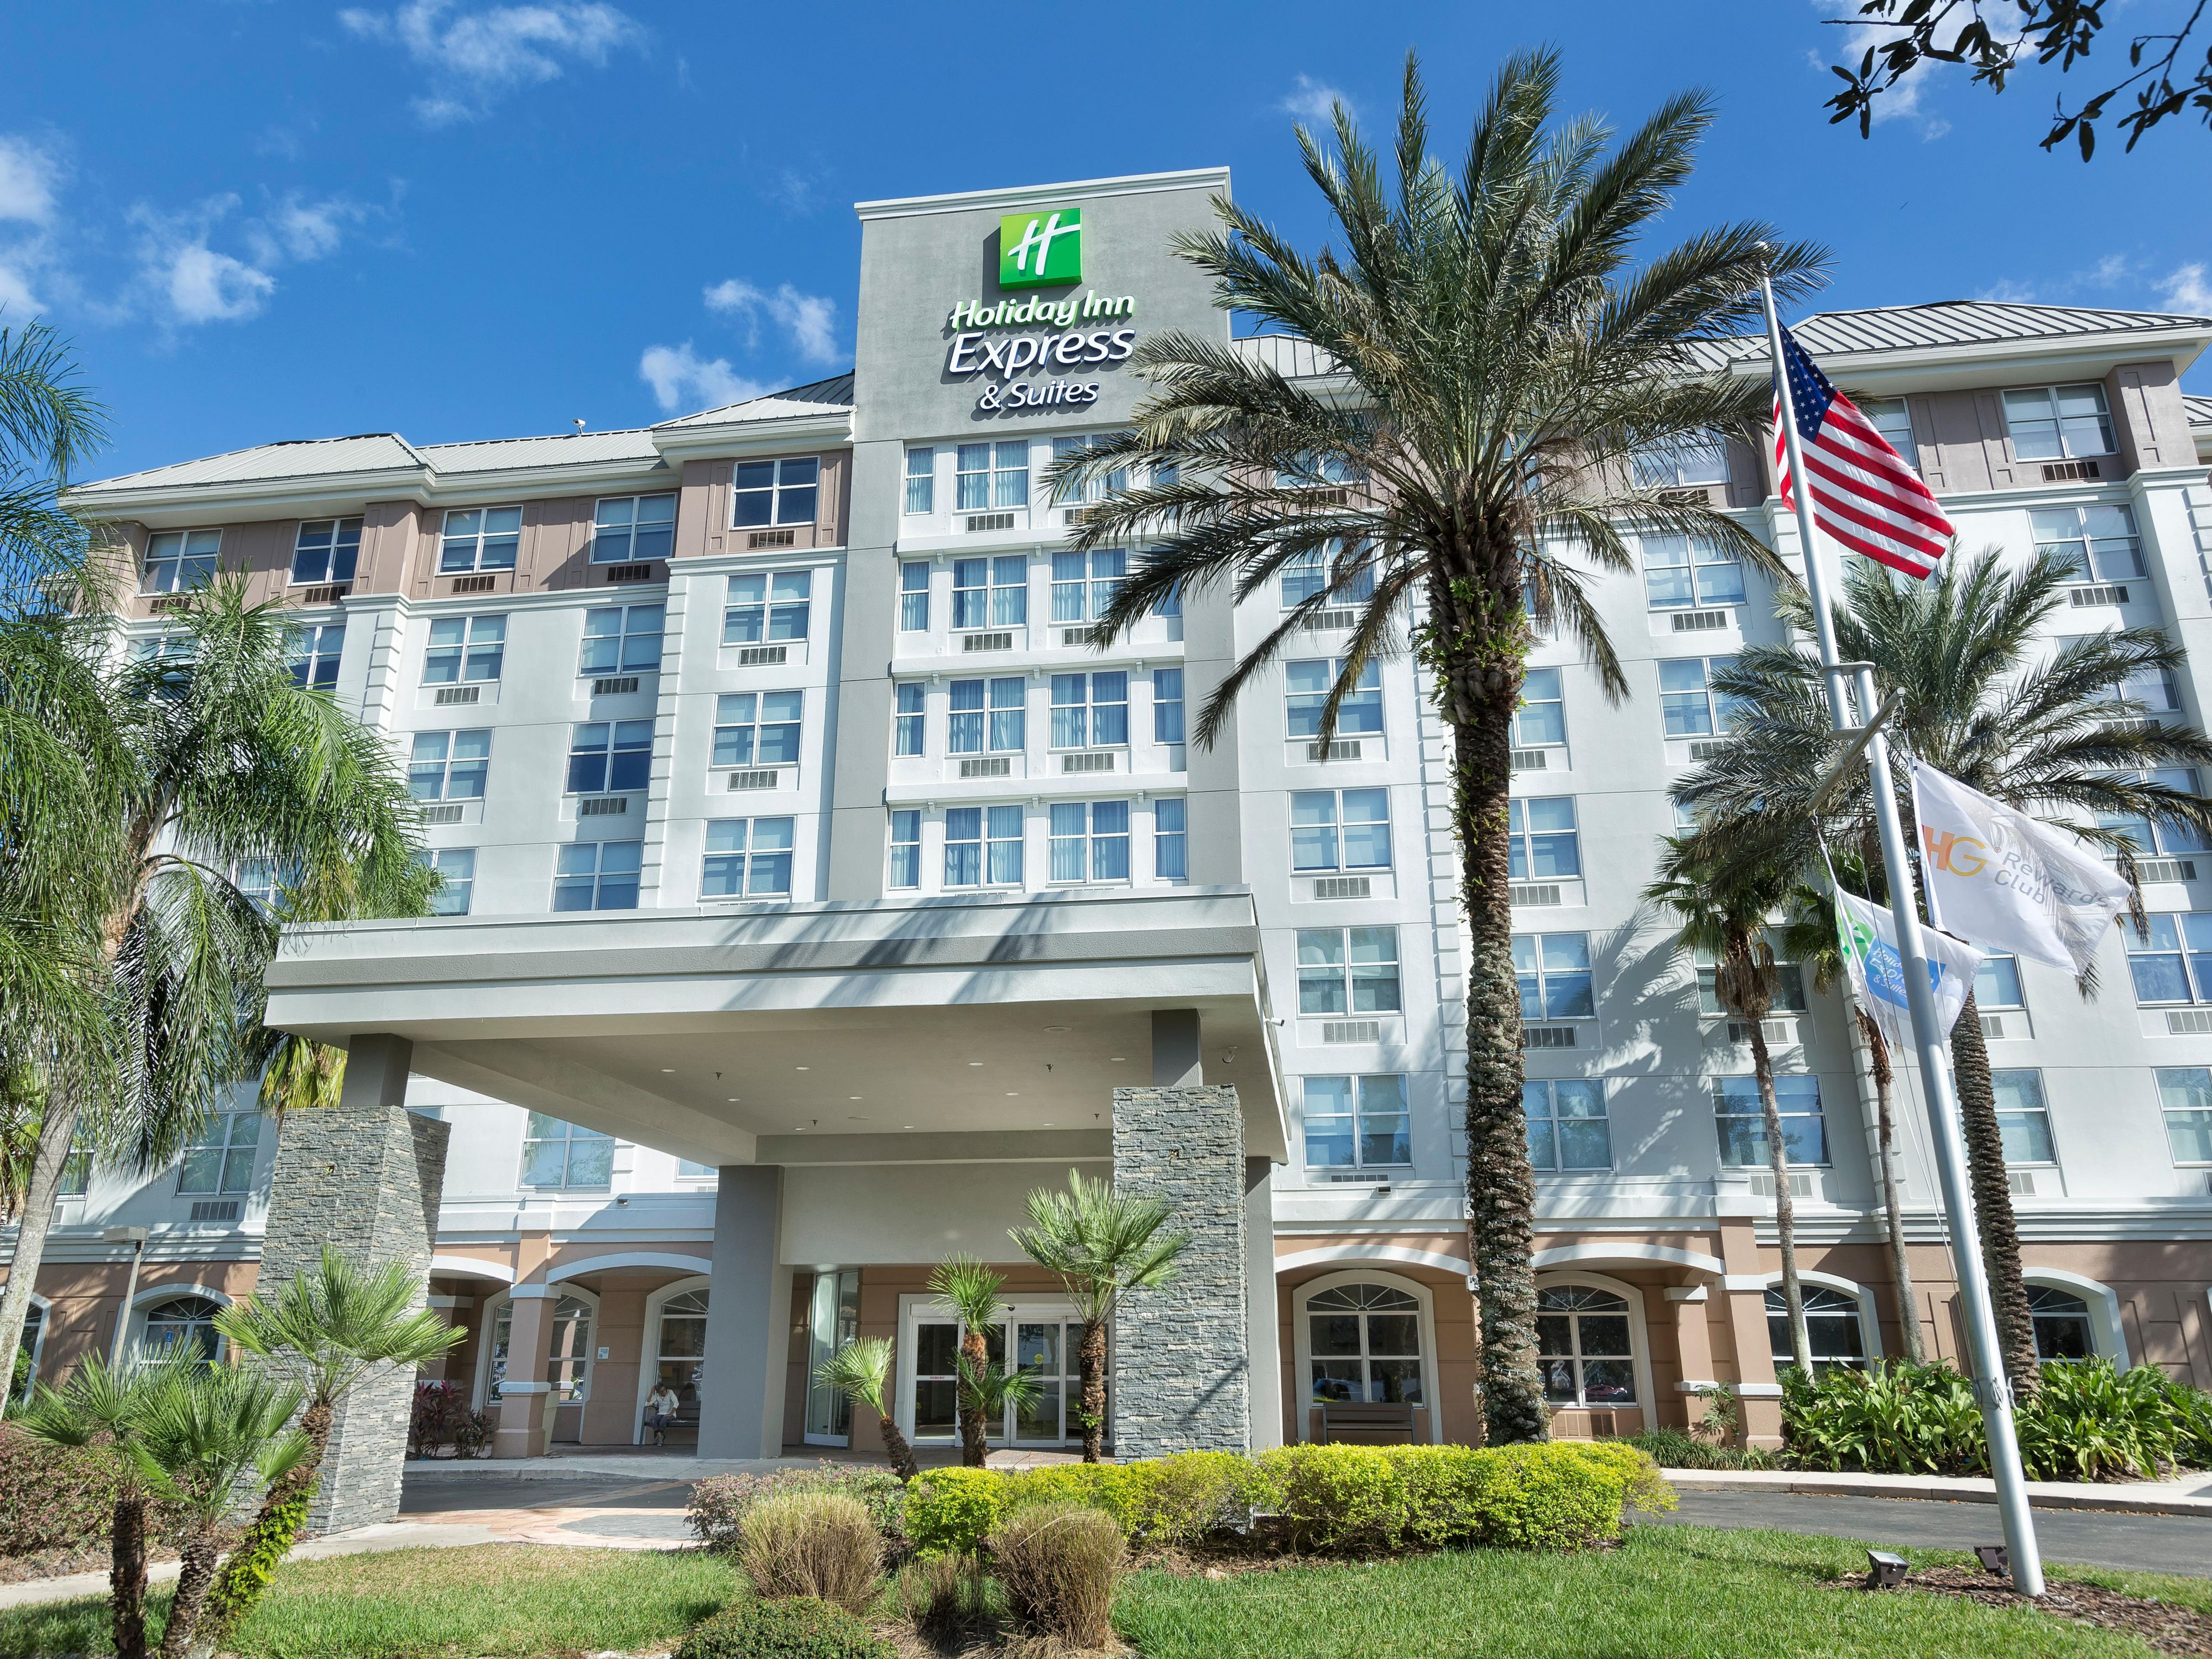 Featured Kissimmee Hotels